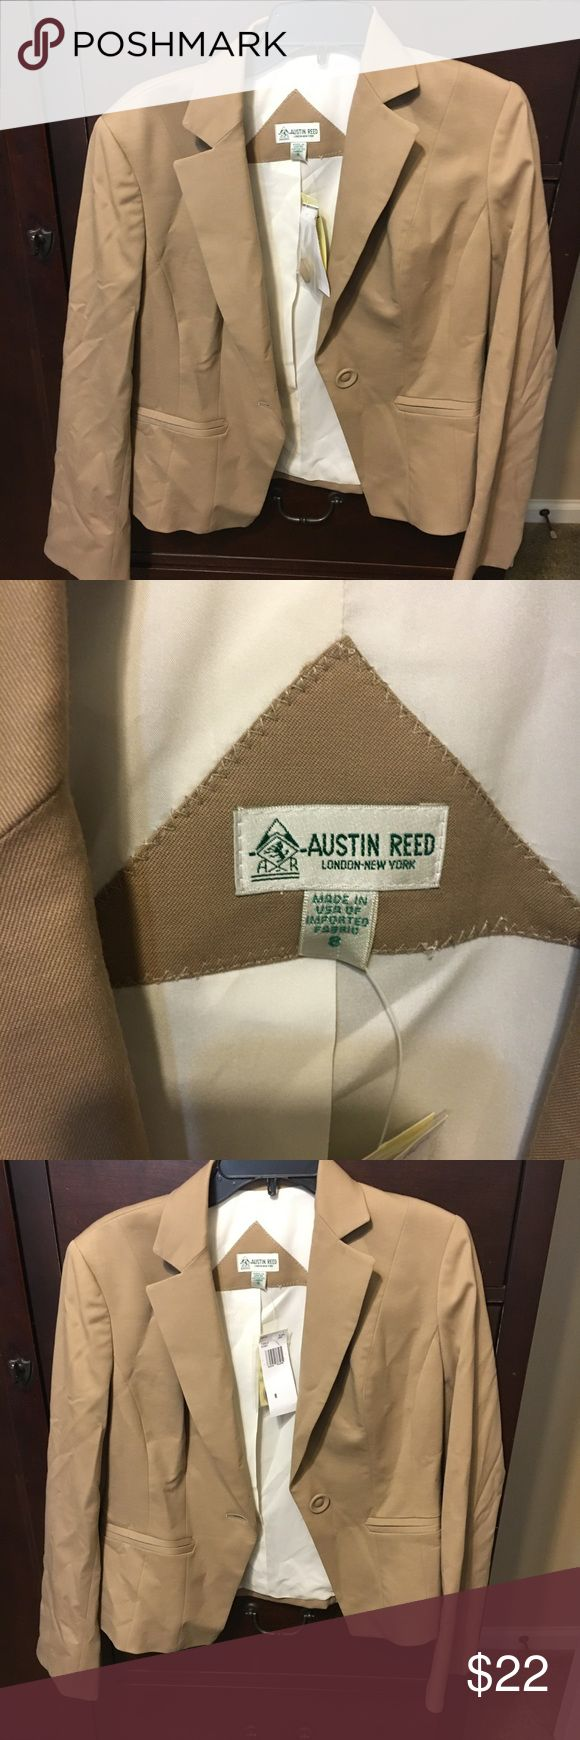 Tan blazer Great tan blazer for the fall! Never worn, new with tags Austin Reed Jackets & Coats Blazers